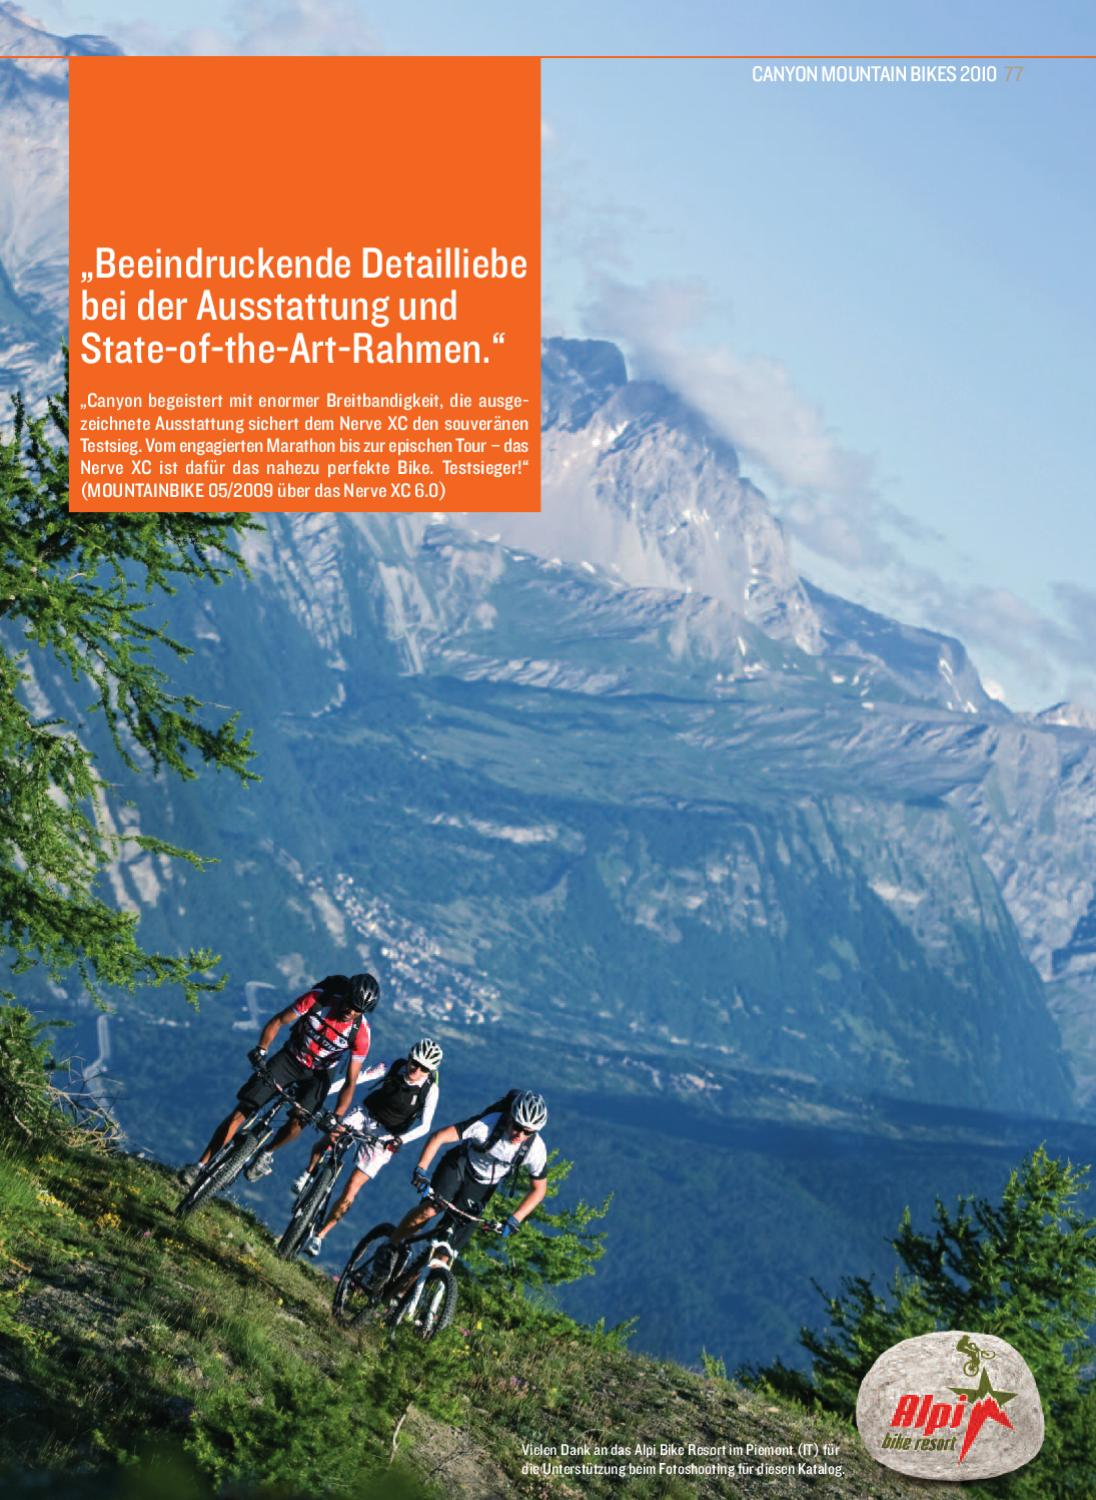 Canyon MTB Katalog 2010 by Canyon Bicycles GmbH - issuu